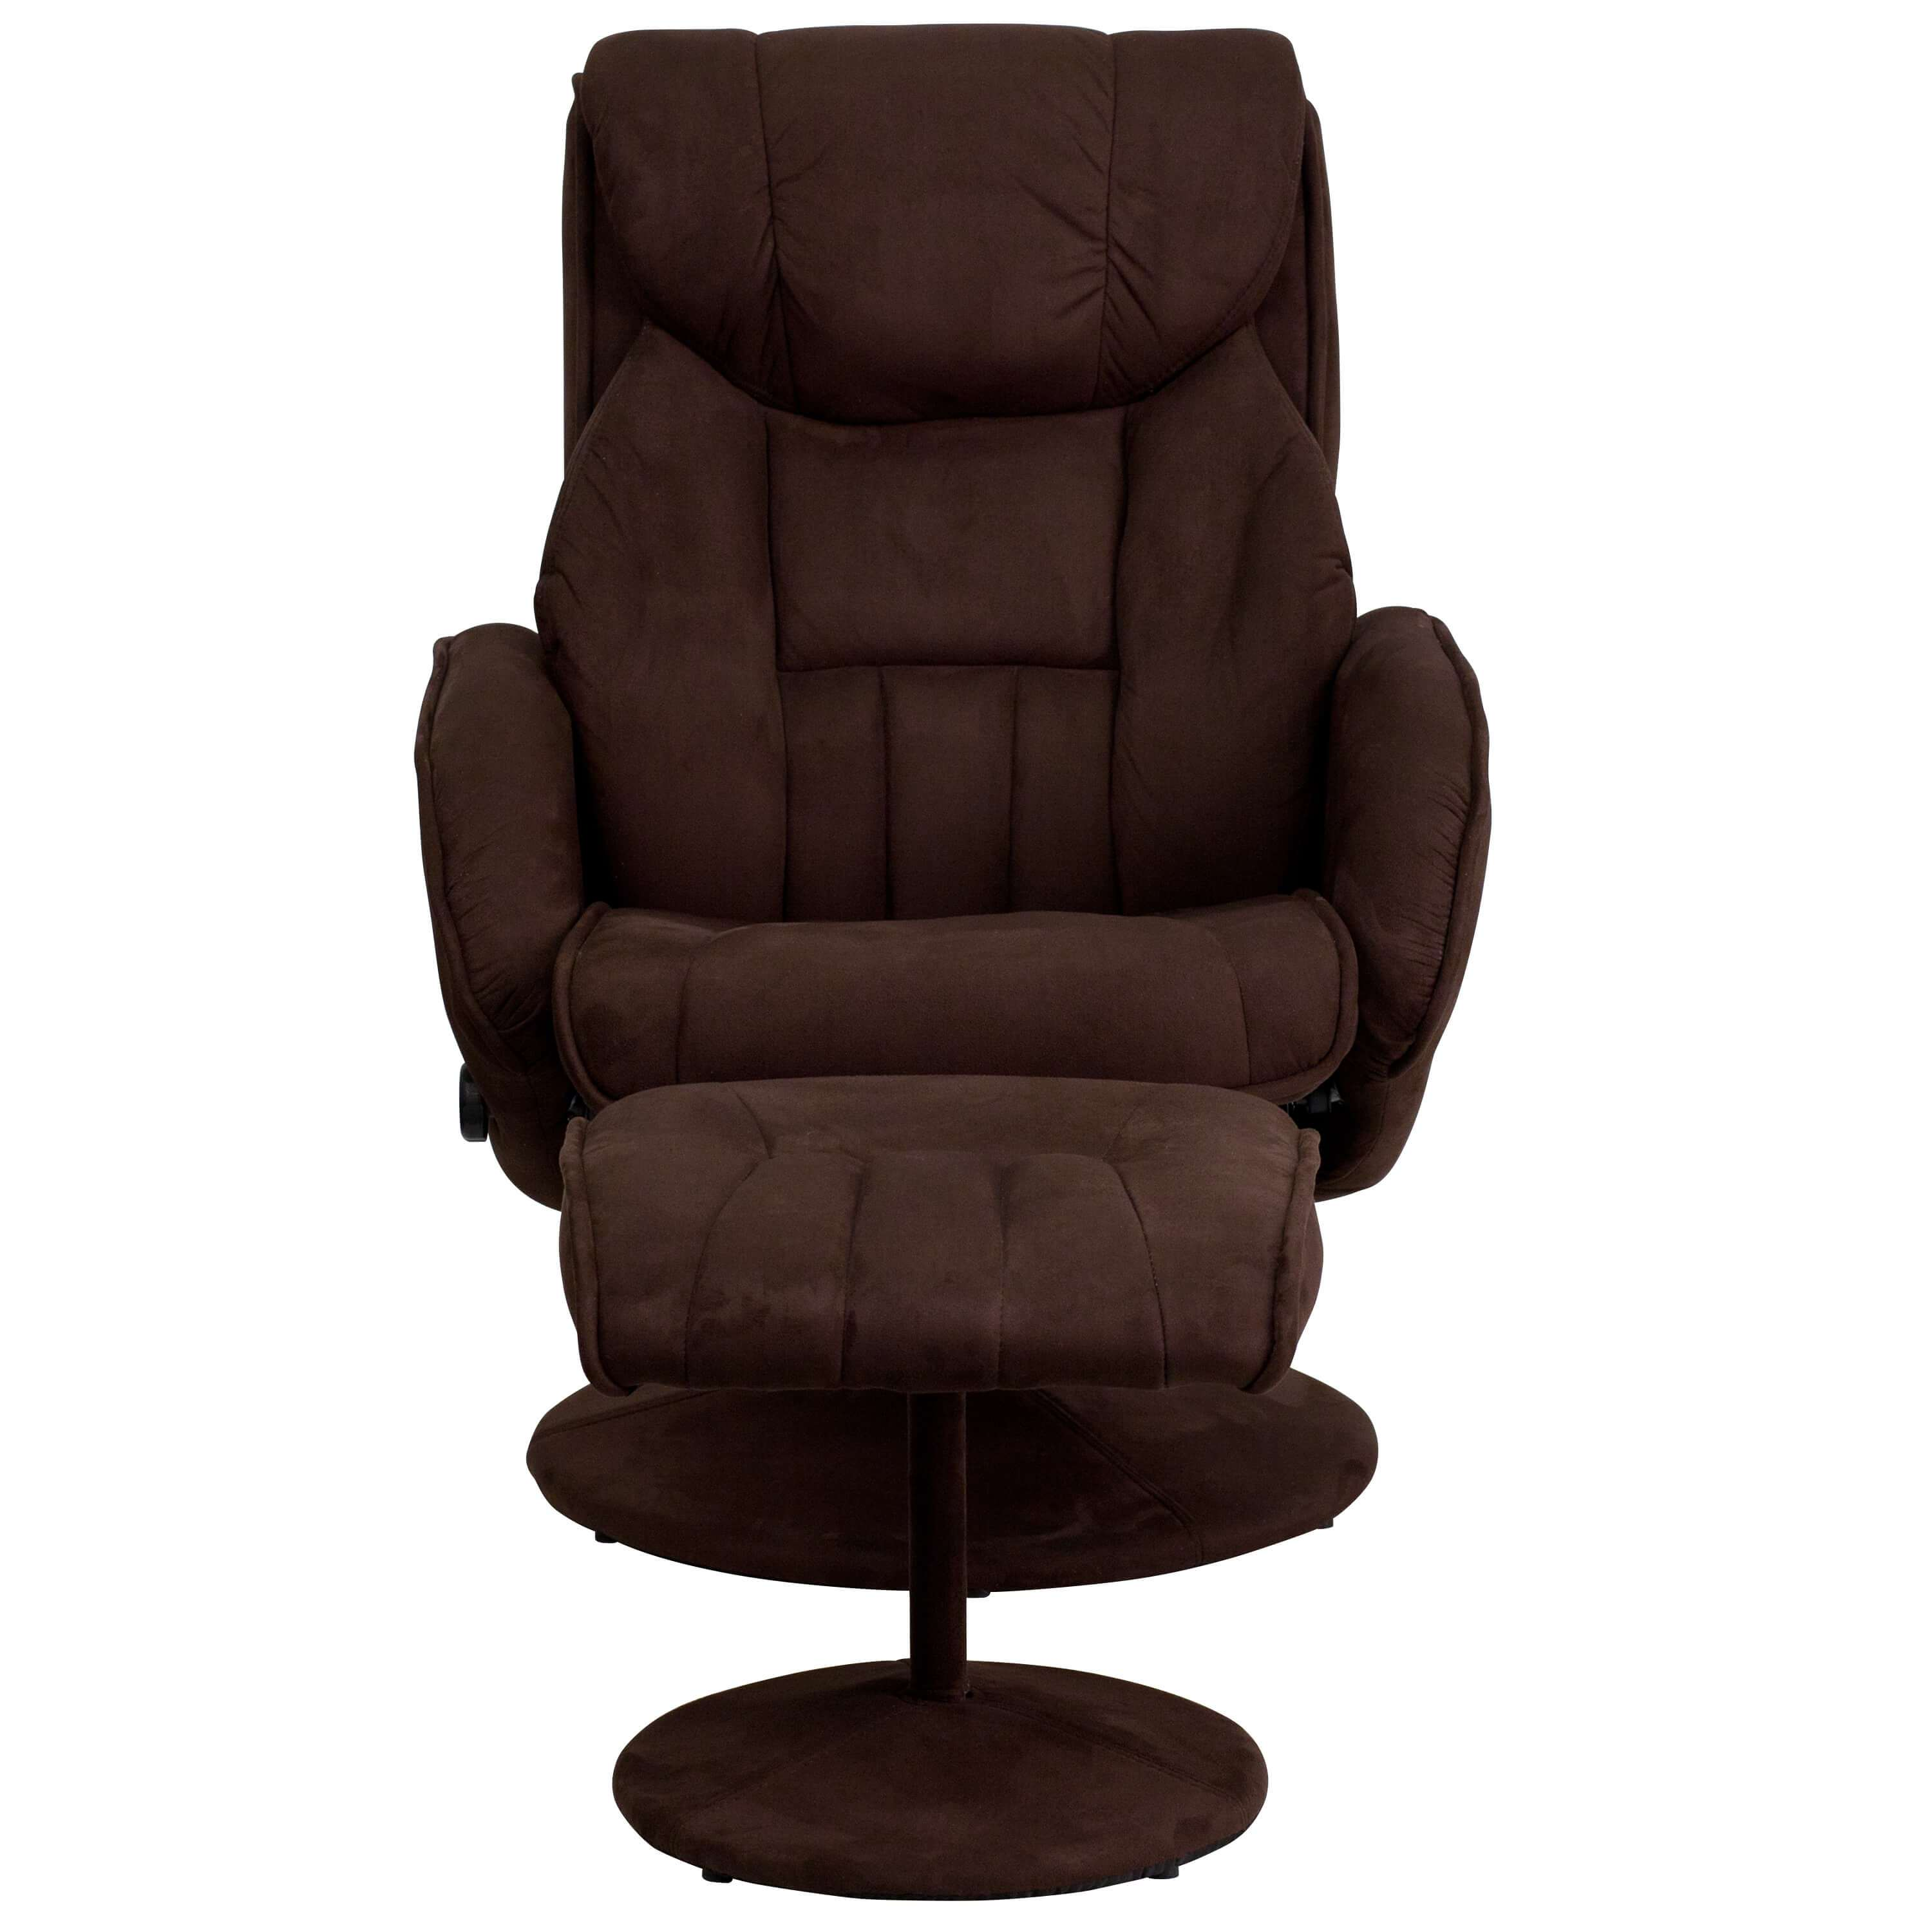 Brown Recliner Chair Front View